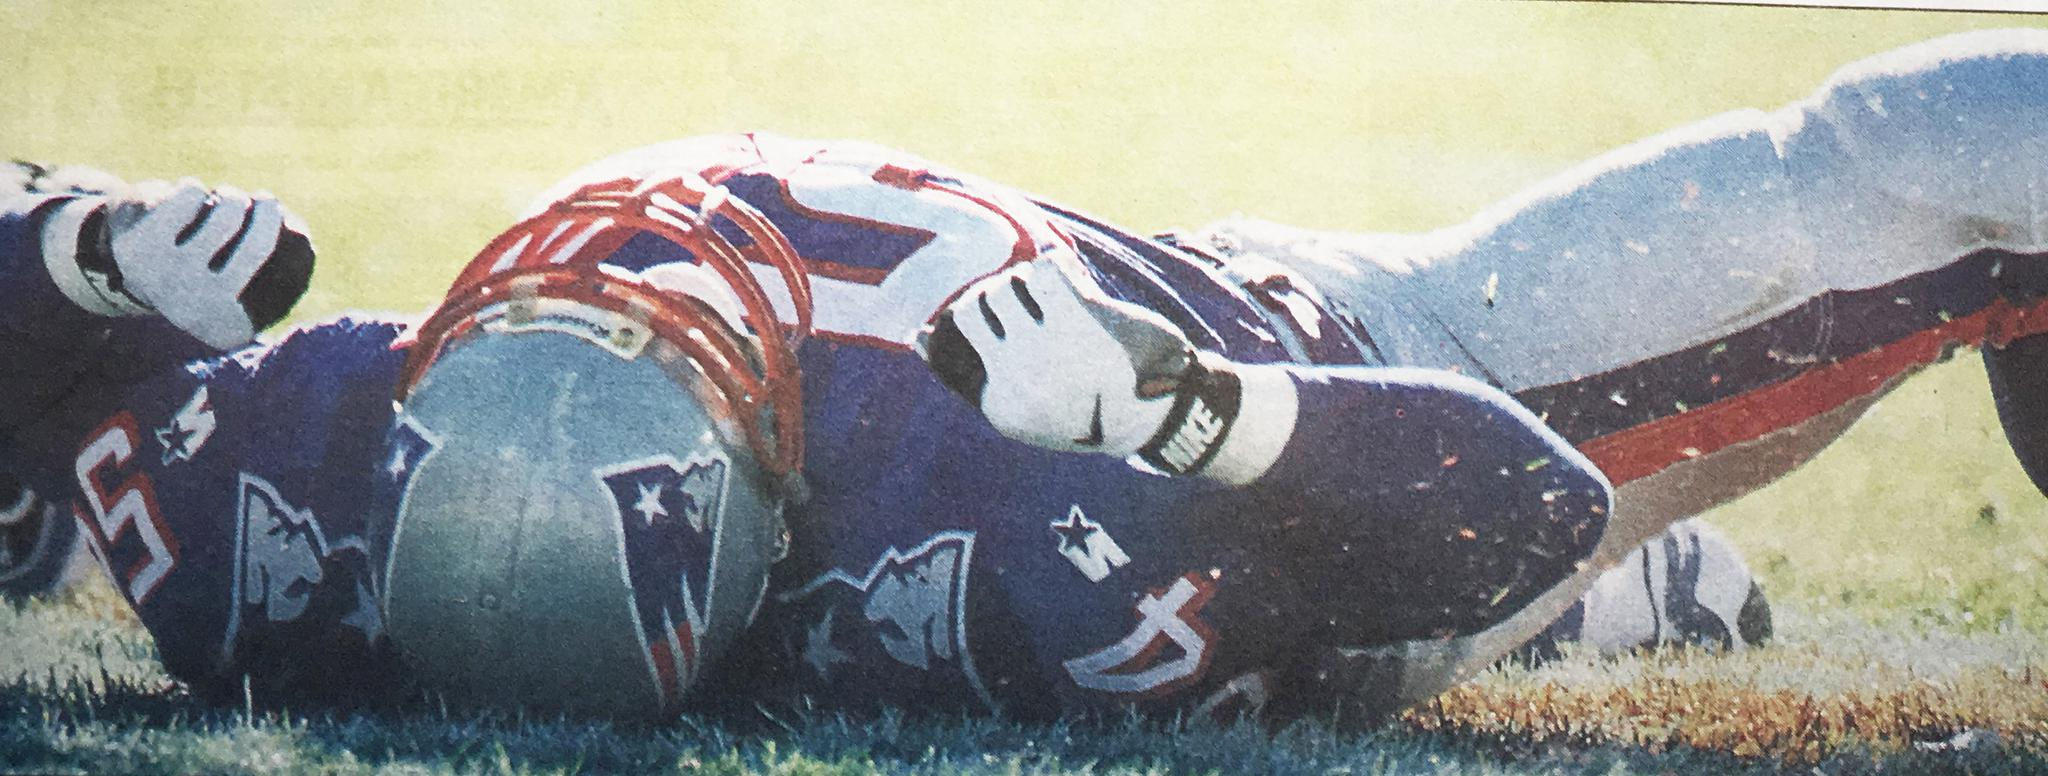 Rookie linebacker Tedy Bruschi dropped the ball on a fake-punt conversion attempt.